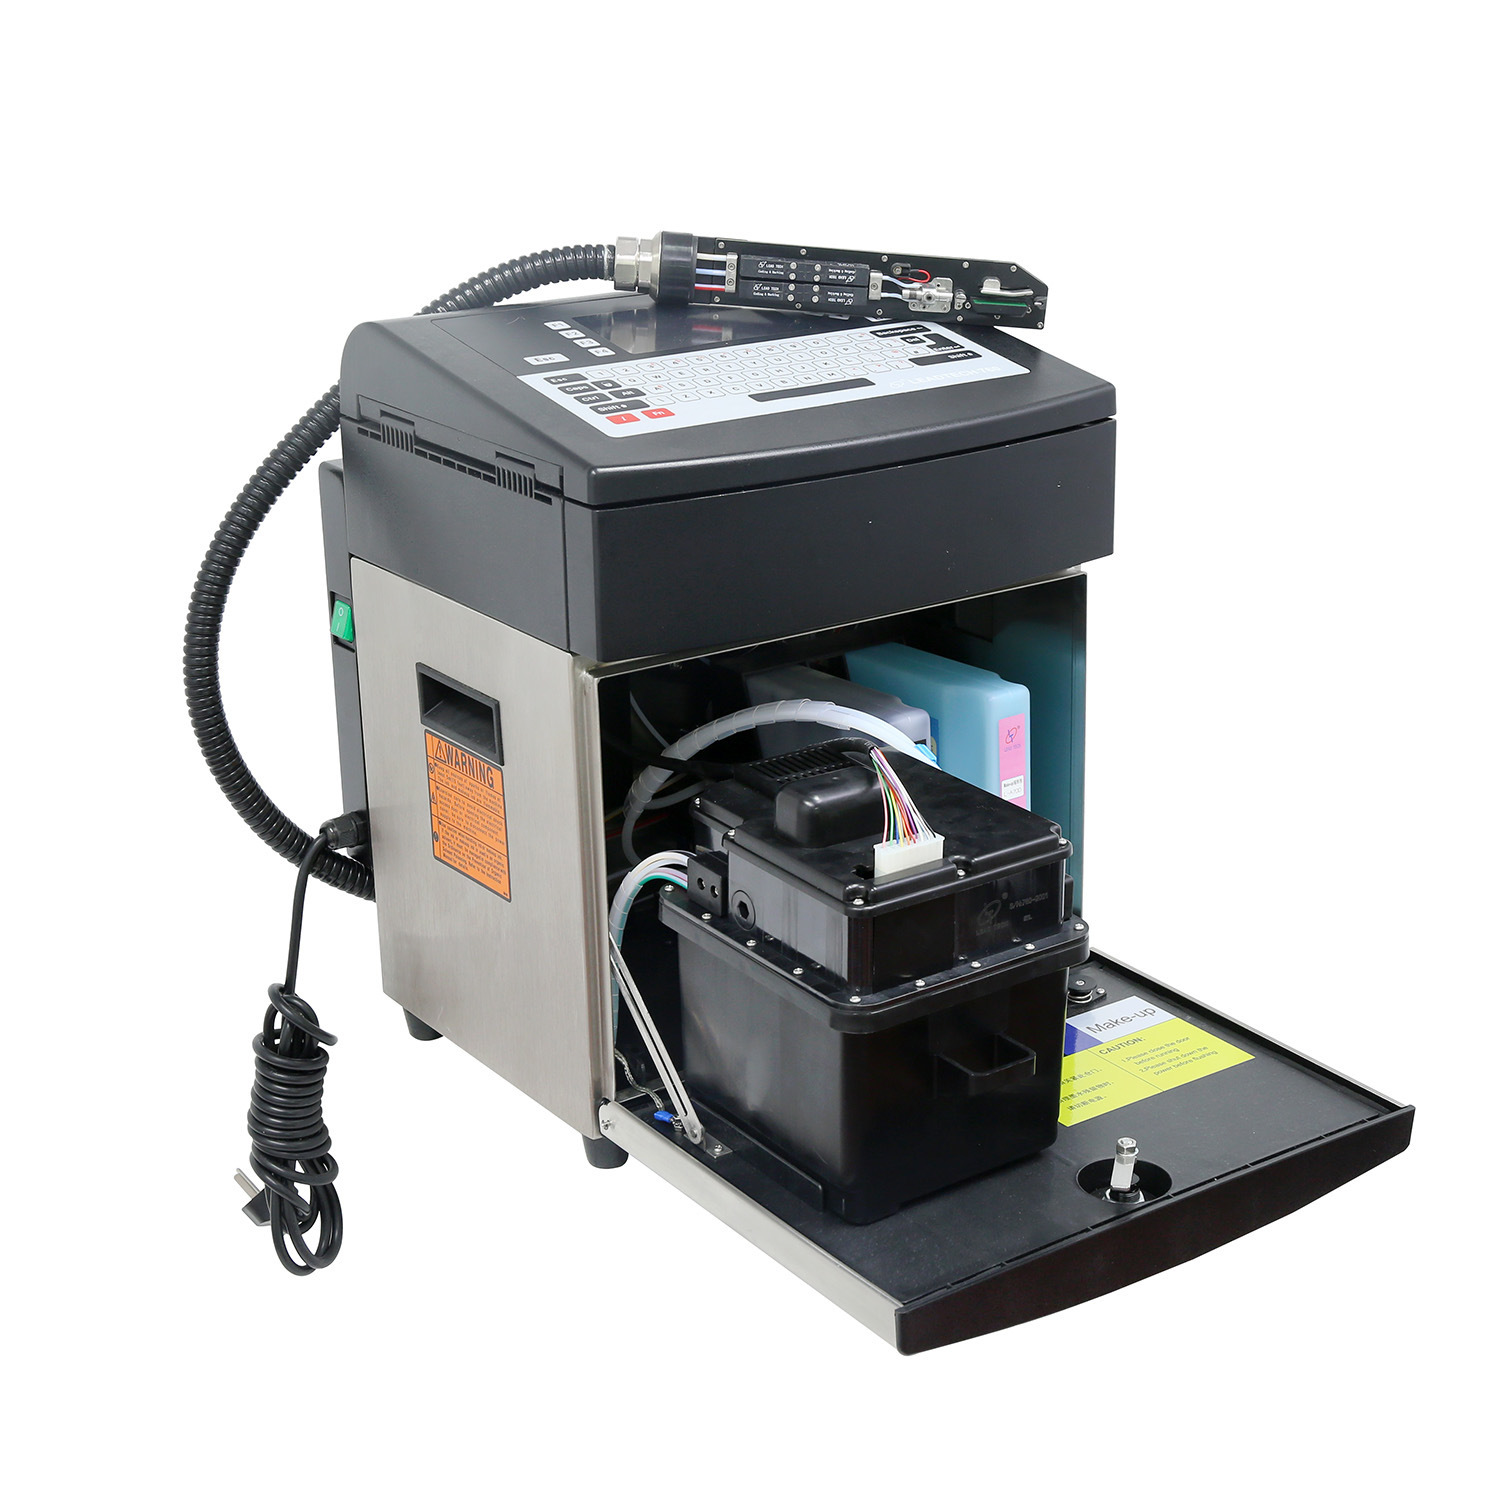 Leadtech Lt760 Industrial Variable Color Inkjet Printer Machine